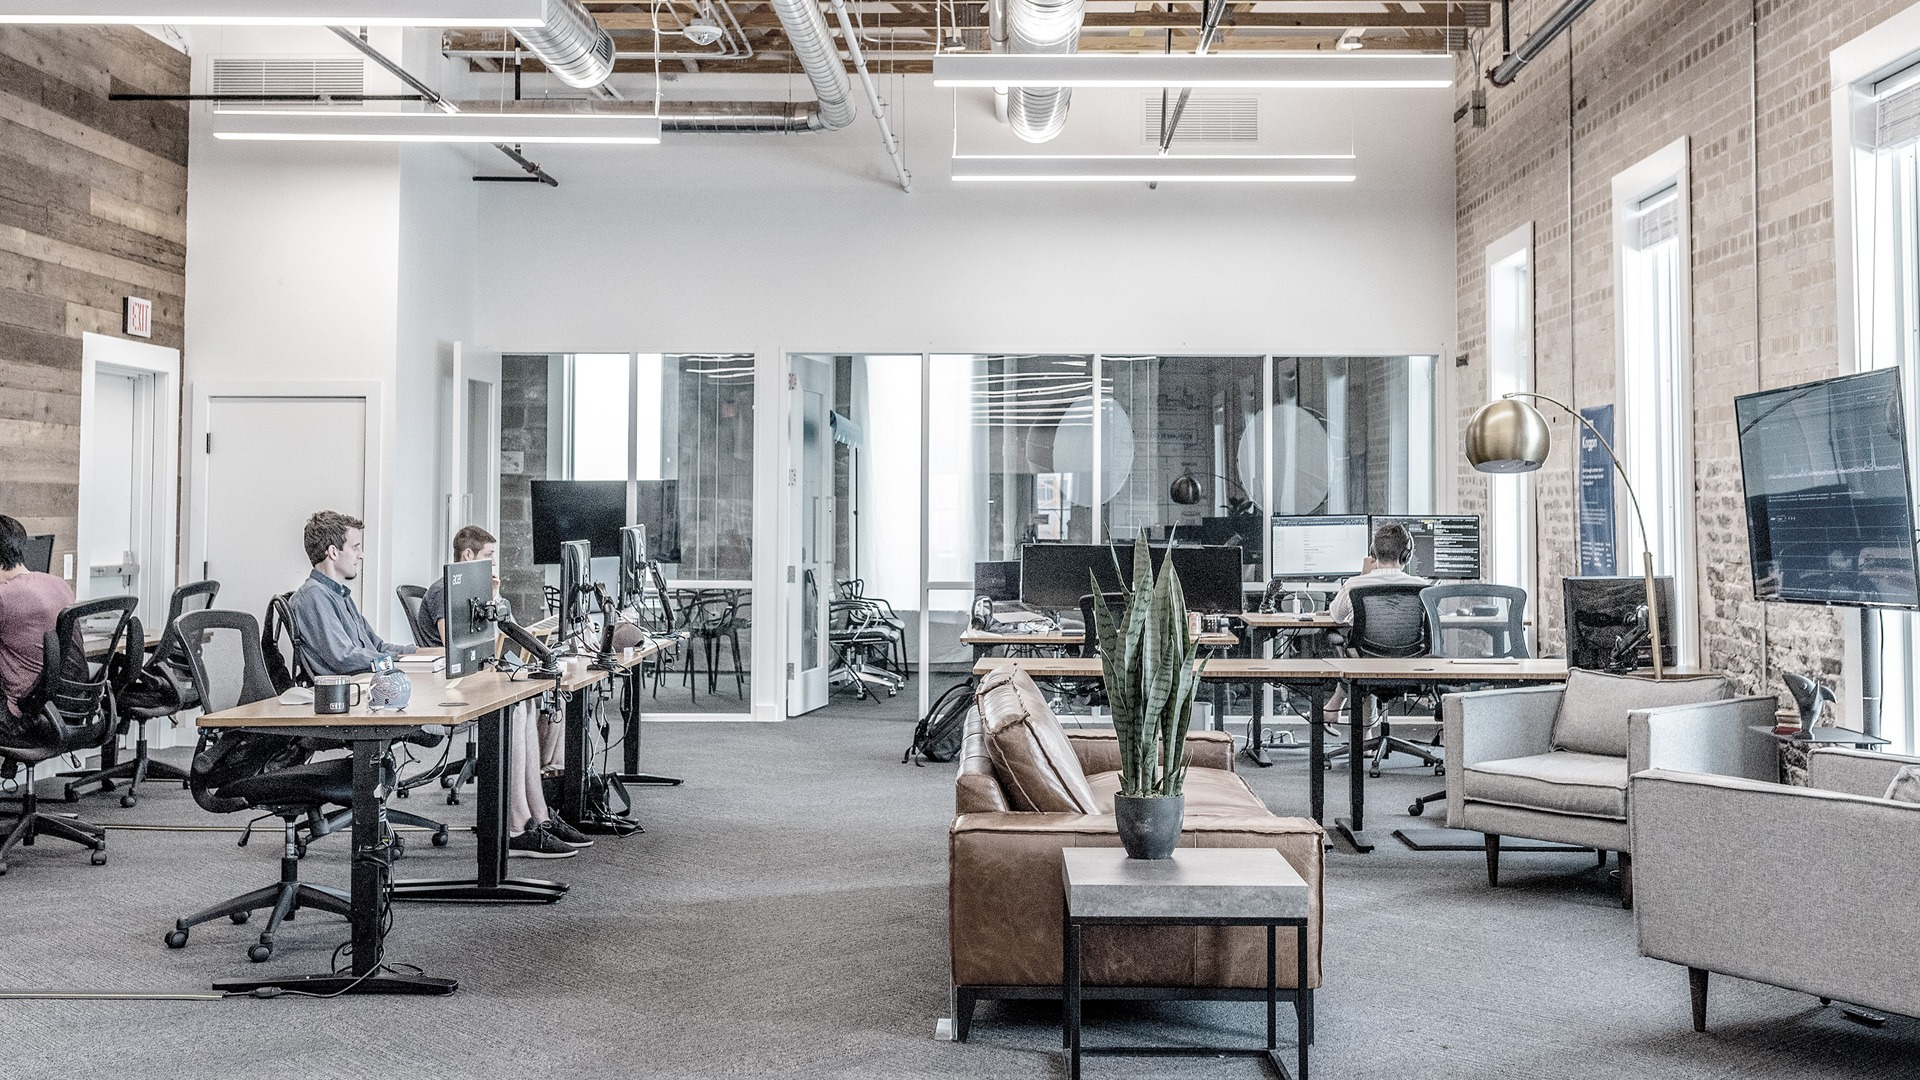 cshark_blog_startup-coworking-spaces-in-stockholm